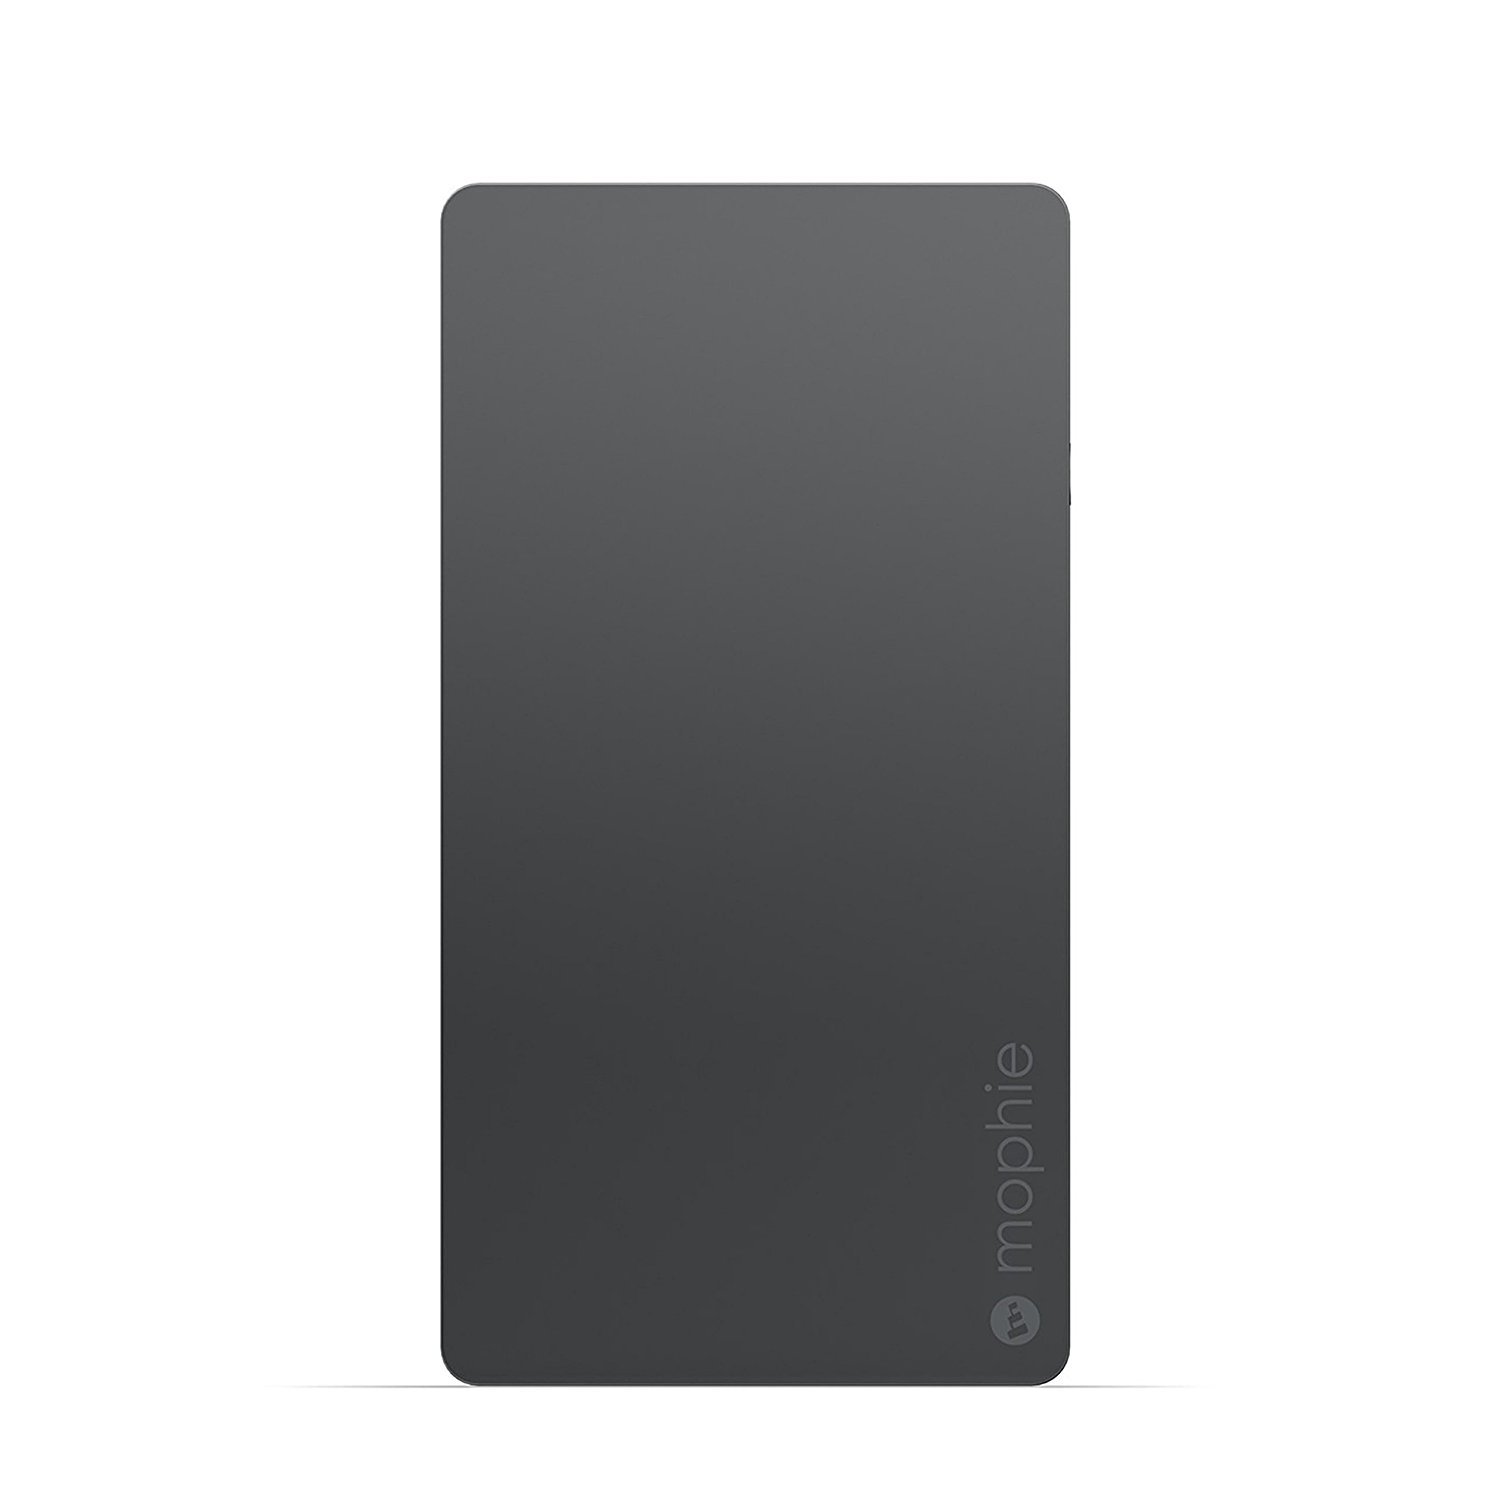 mophie spacestation portable 32GB storage and external battery for Smartphones and Tablets (6,000mAh) - Black